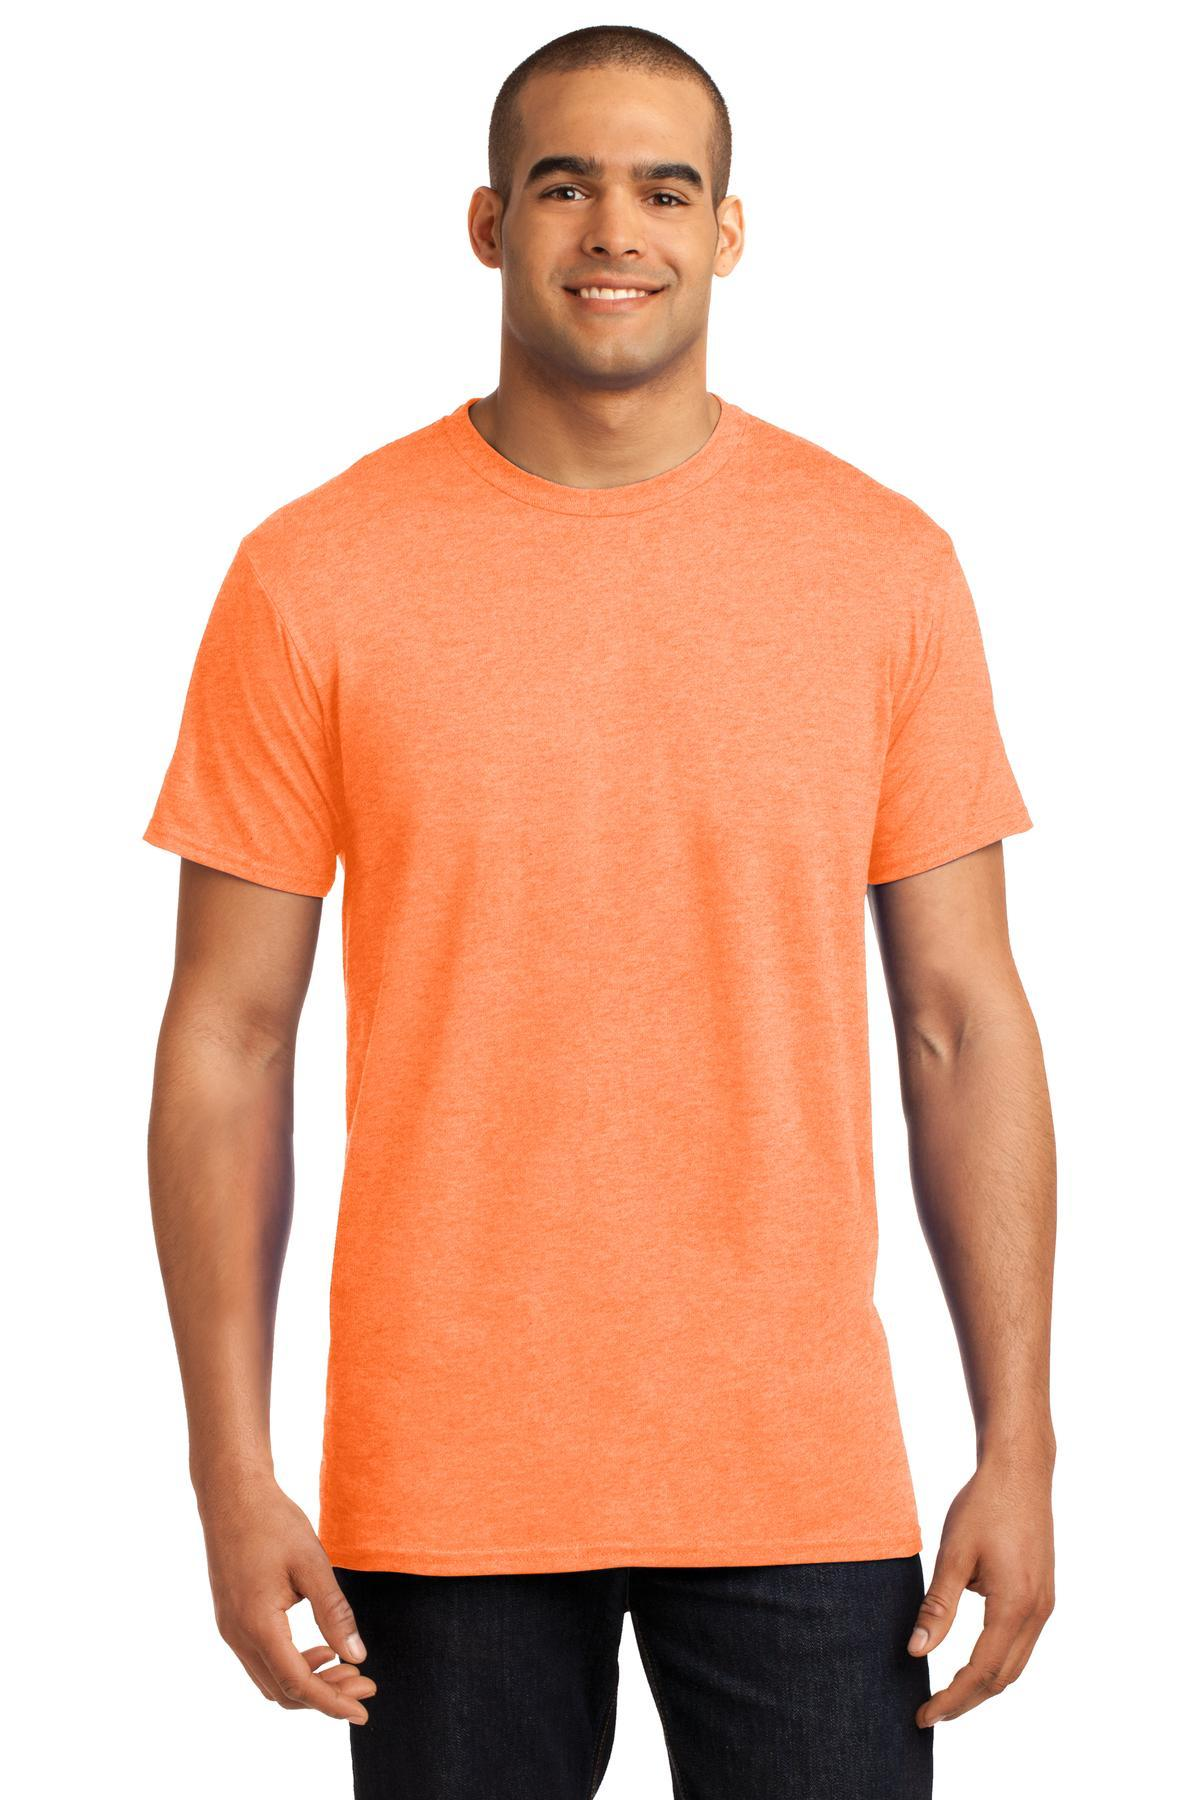 Neon Orange Heather - Hanes 4200